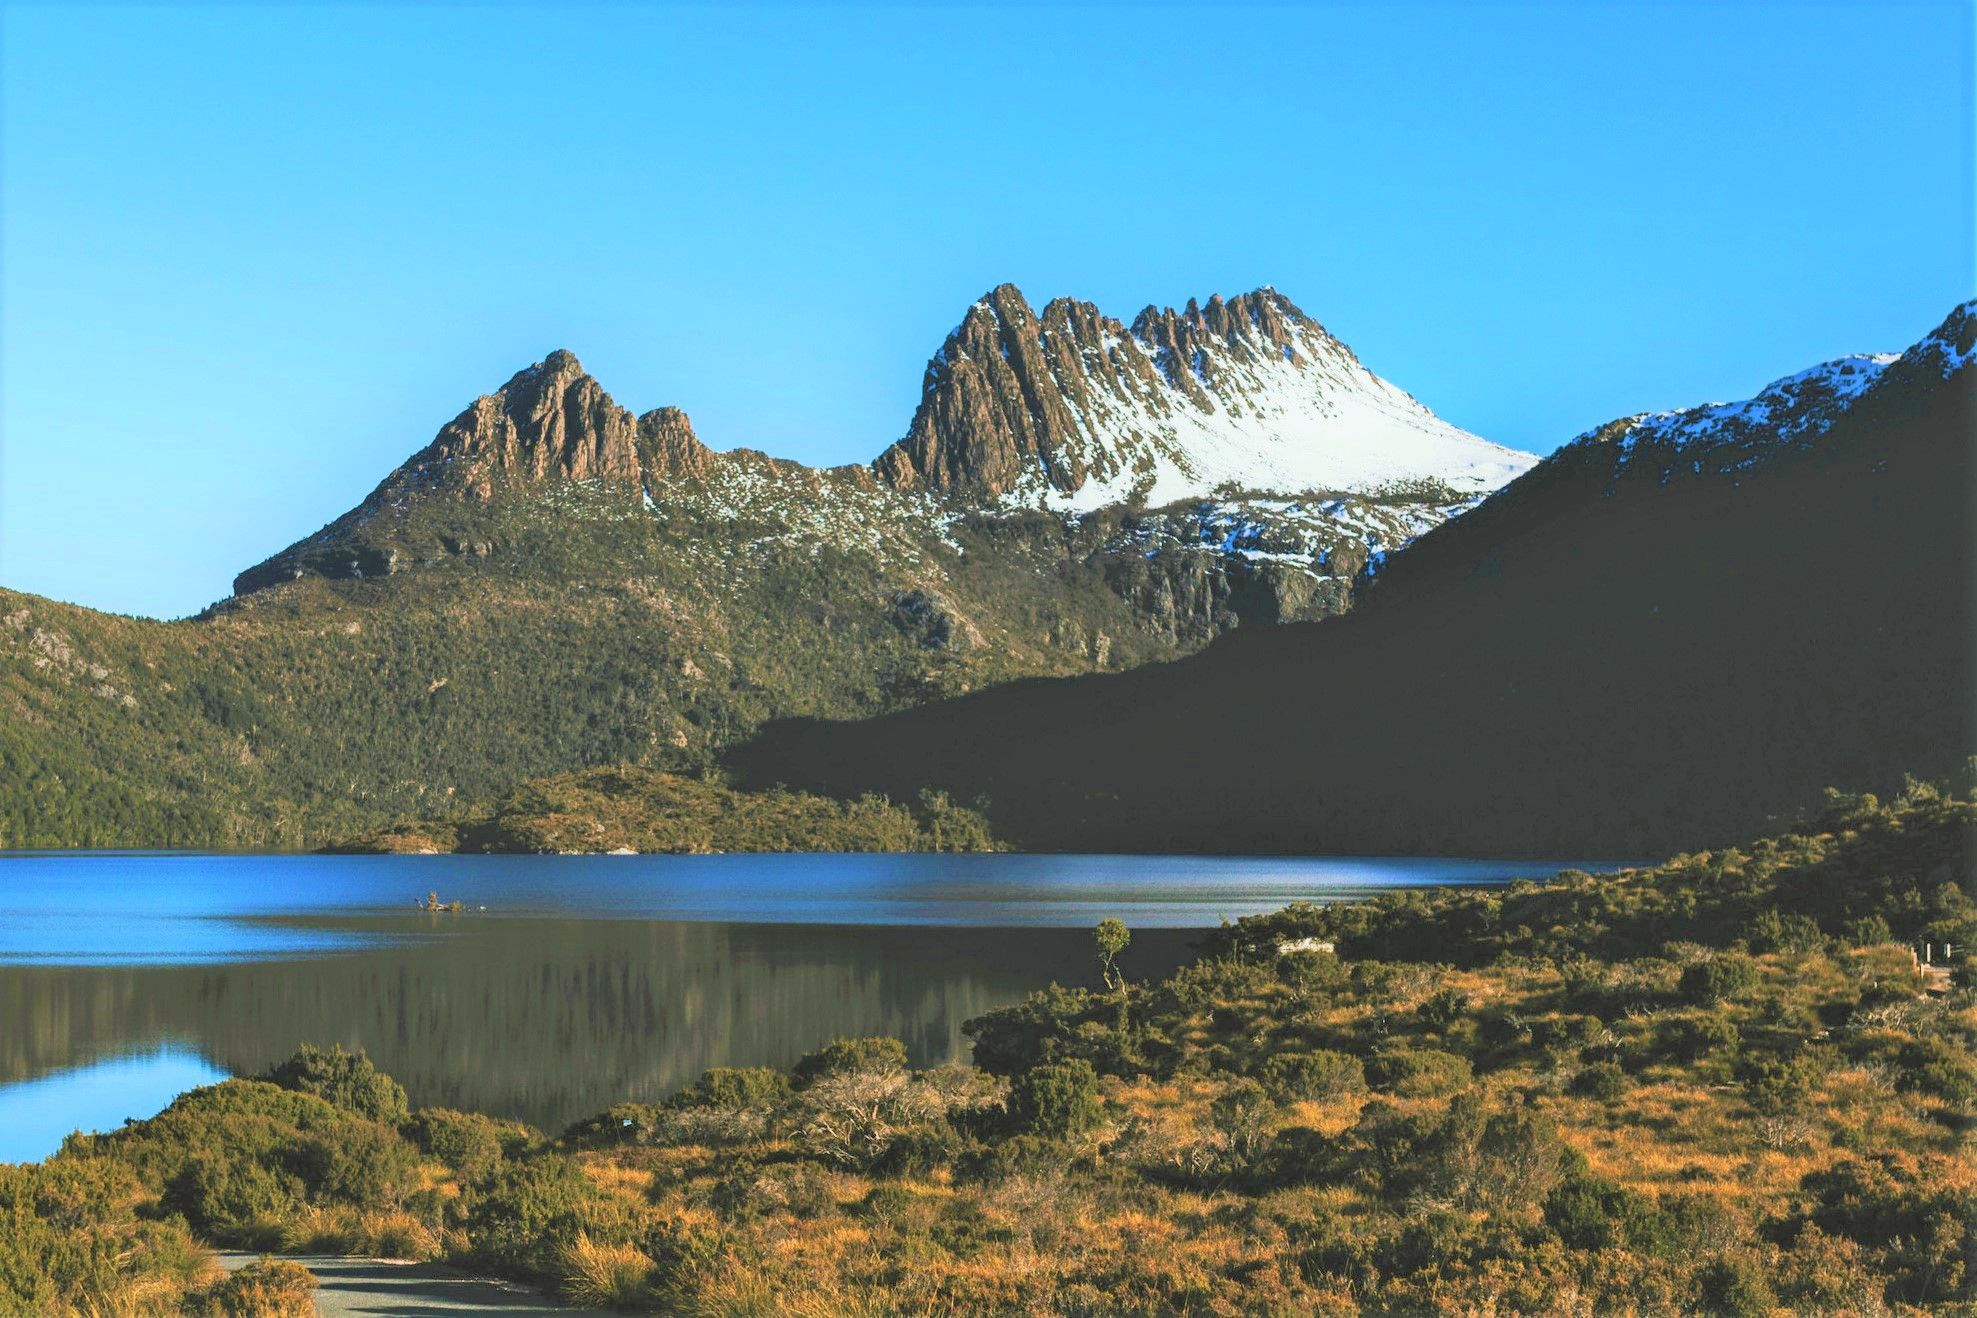 Cradle Mountain, credit - Laura Helle